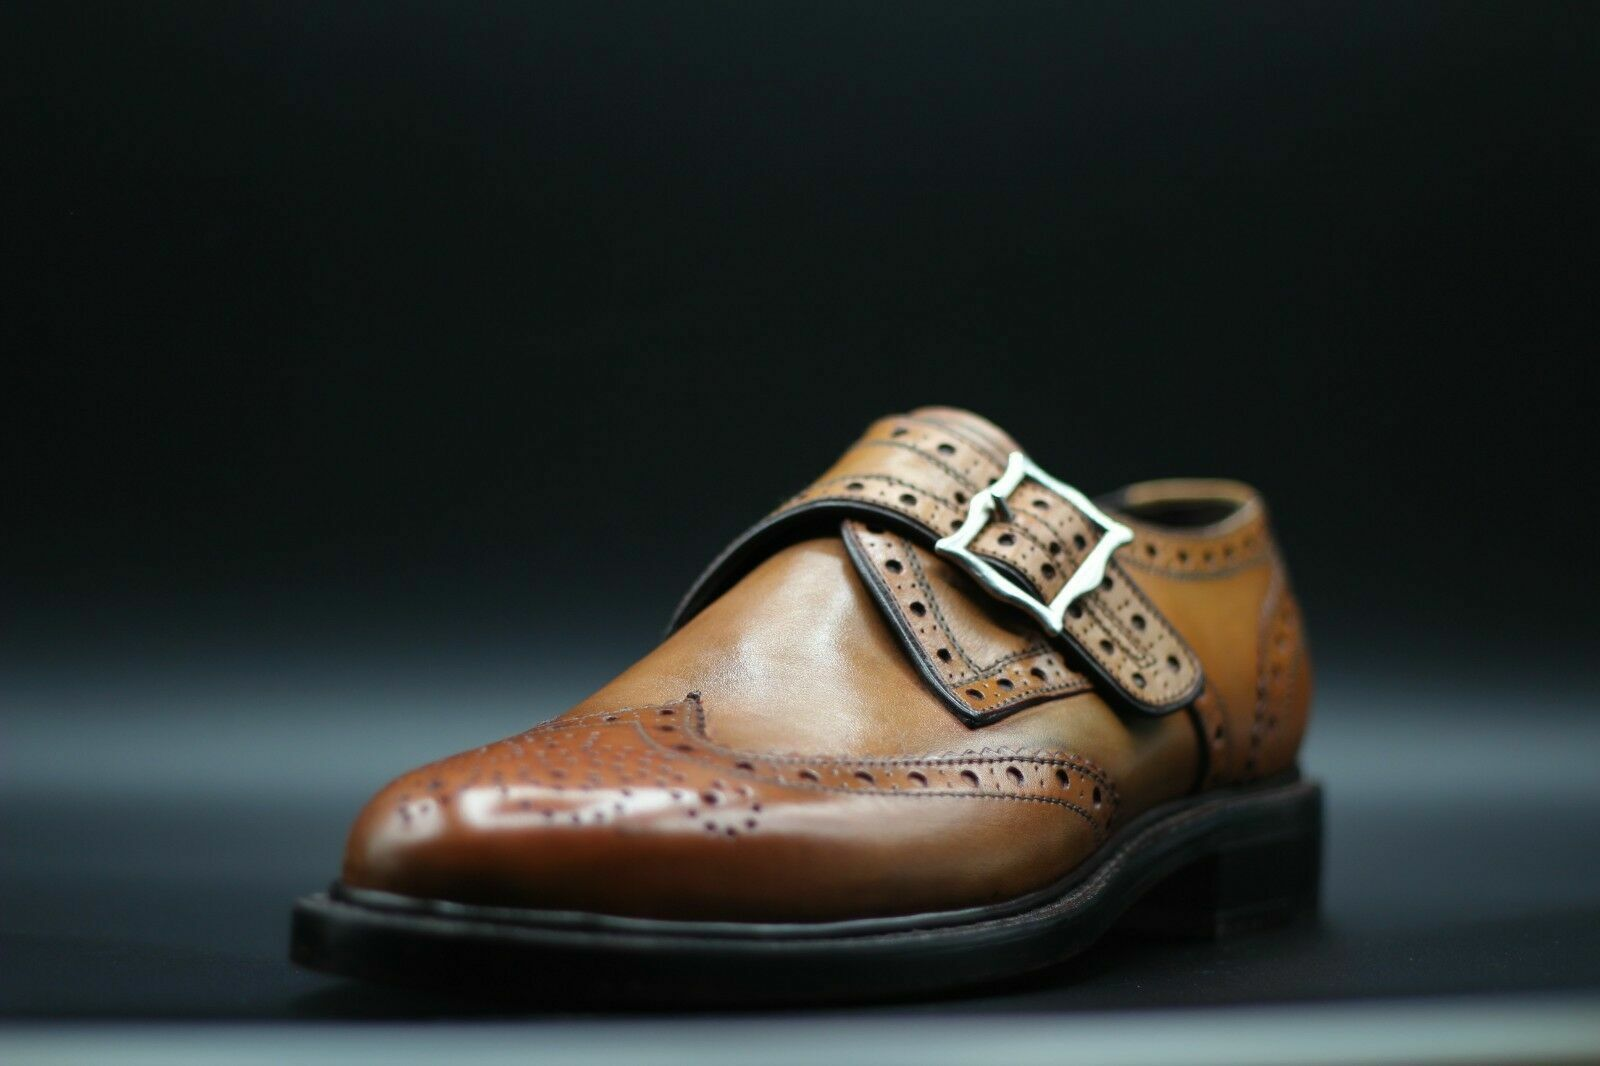 Mens Handmade shoes Tan Tan Tan Leather Single Monk Oxford Brogue Wingtip Formal Boots ce46a0